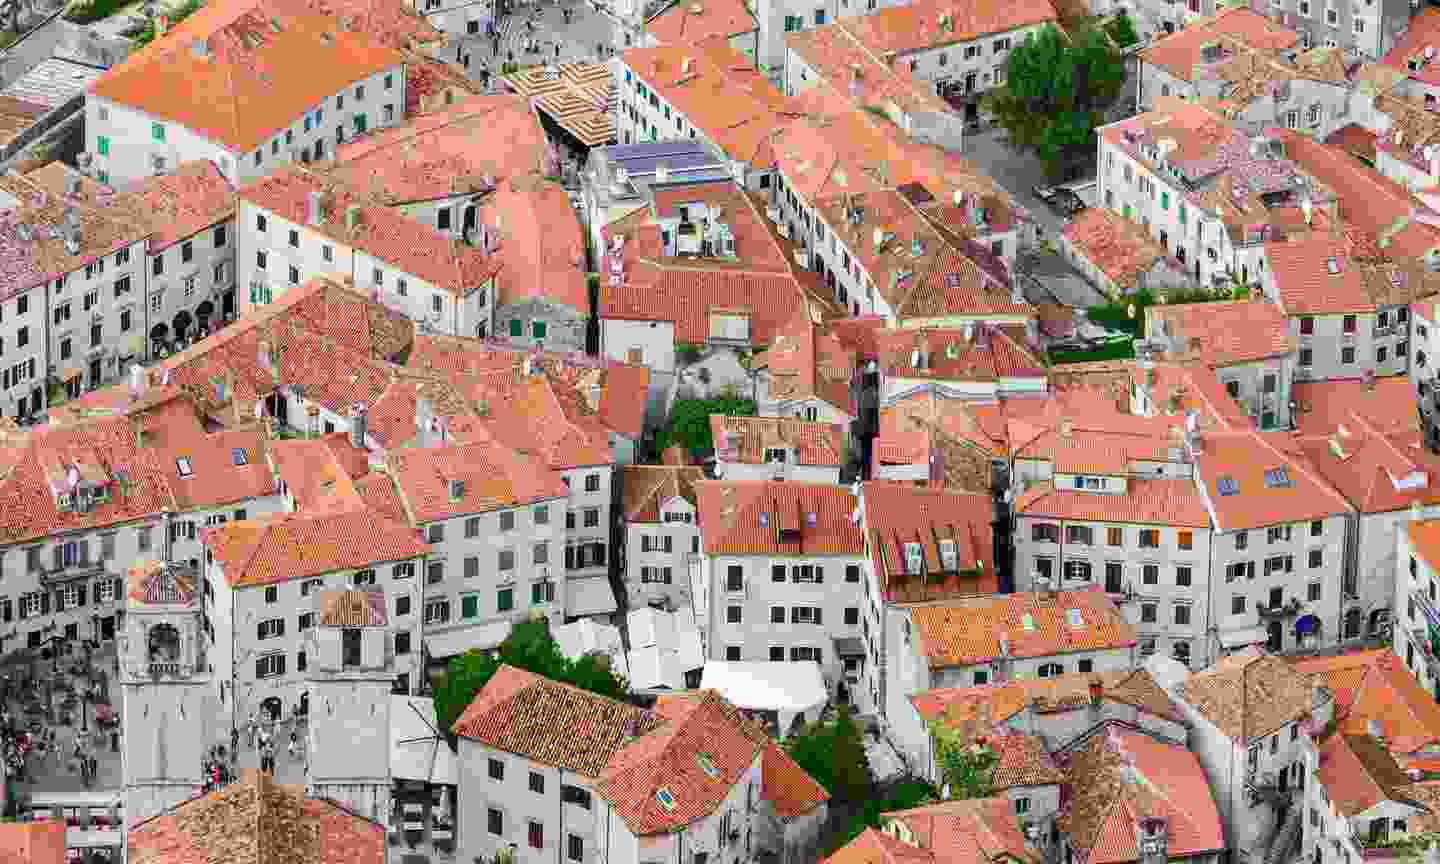 The red-tiled roofs of Stari Grad - the old city (Dreamstime)